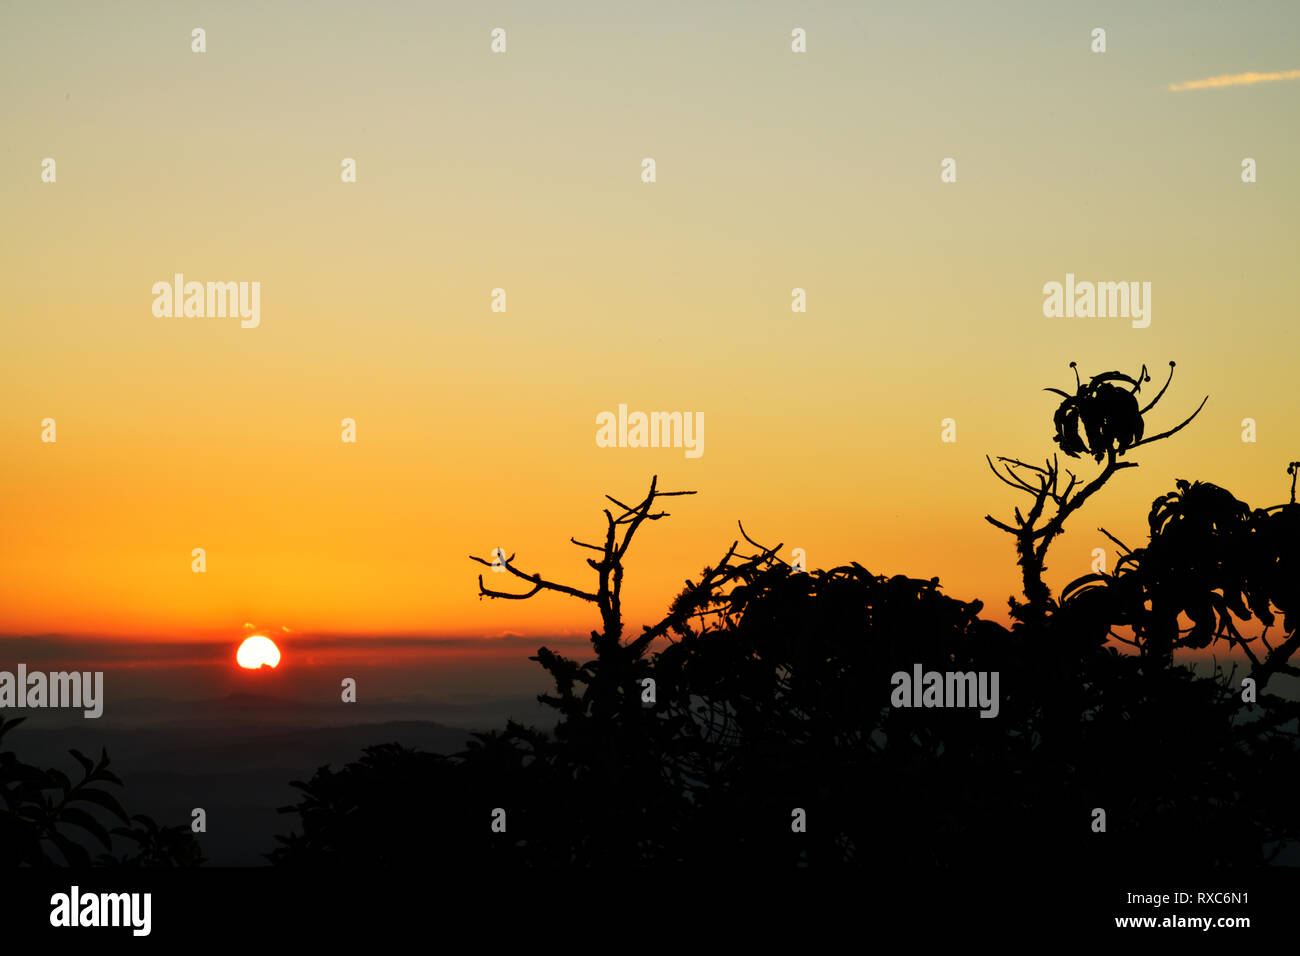 Trees silhouettes at sunrise in Brazil - Stock Image